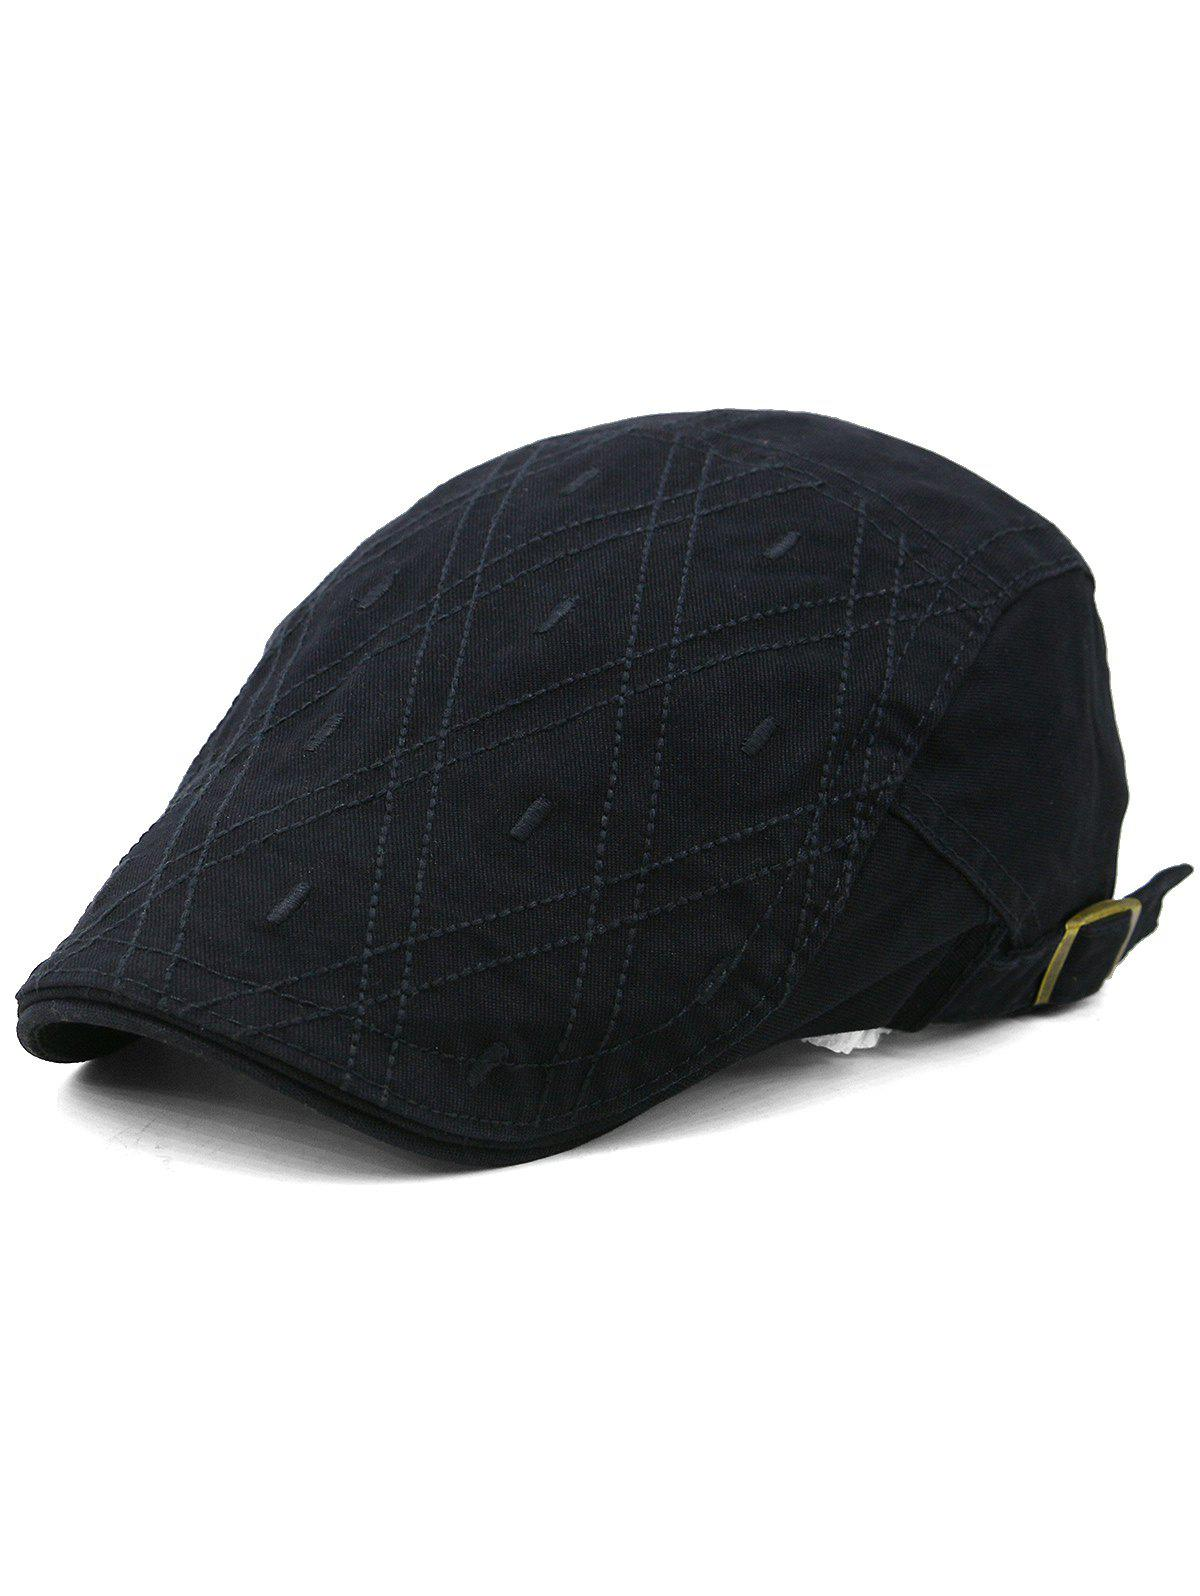 Outdoor Rhombus Embroidery Cabbie Hat цена 2017